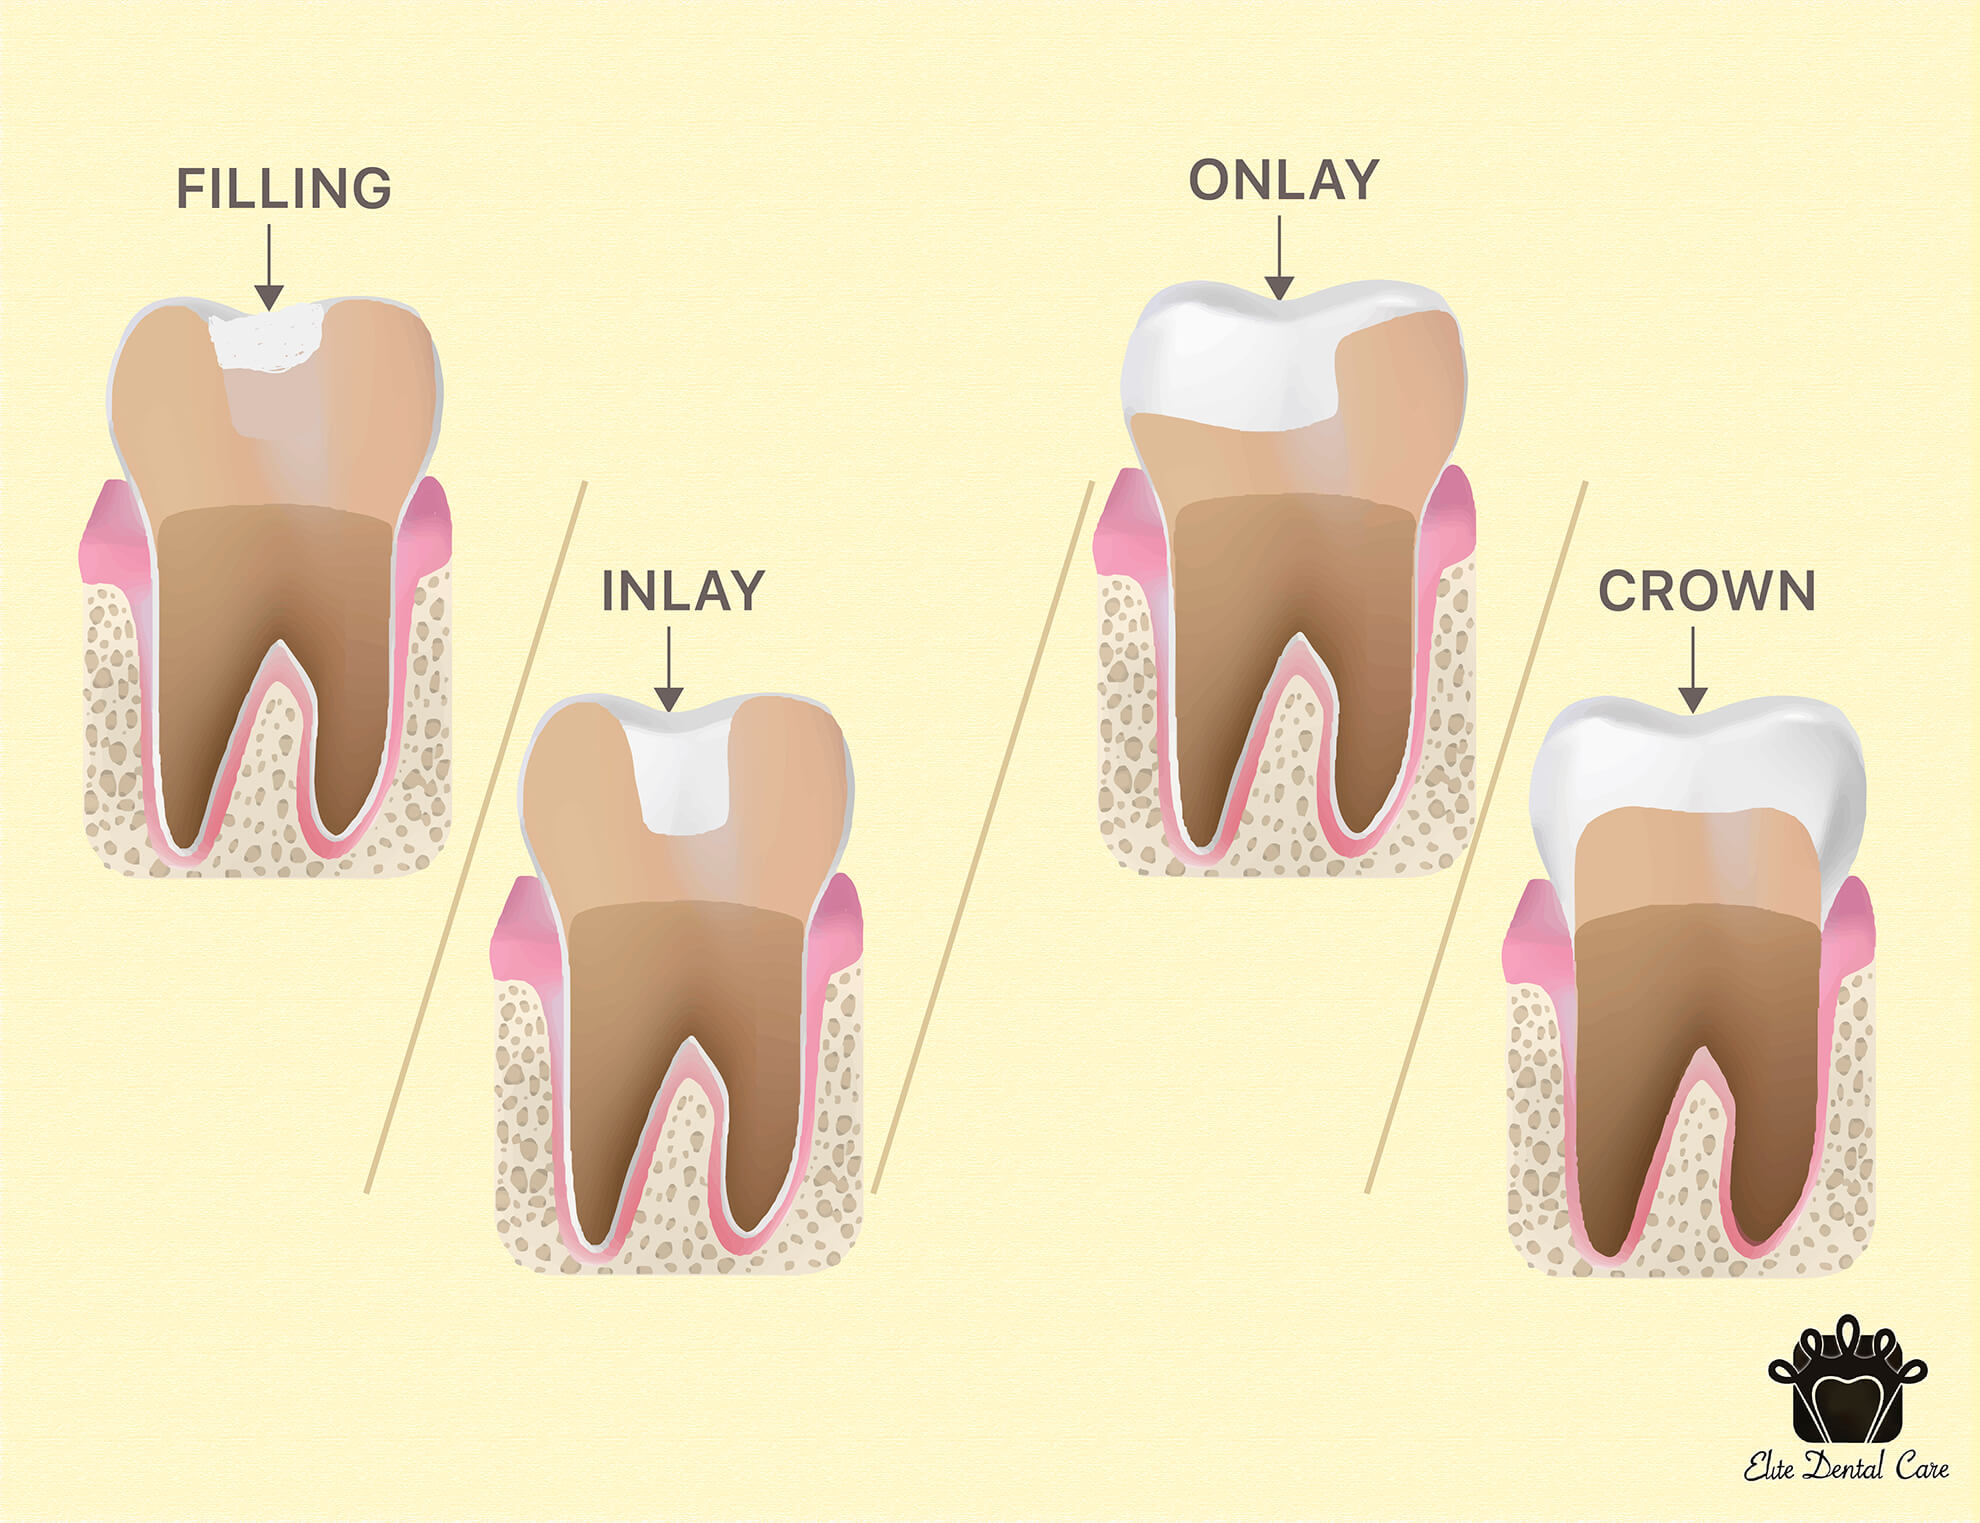 Fillings VS Inlay/Onlay VS Crown